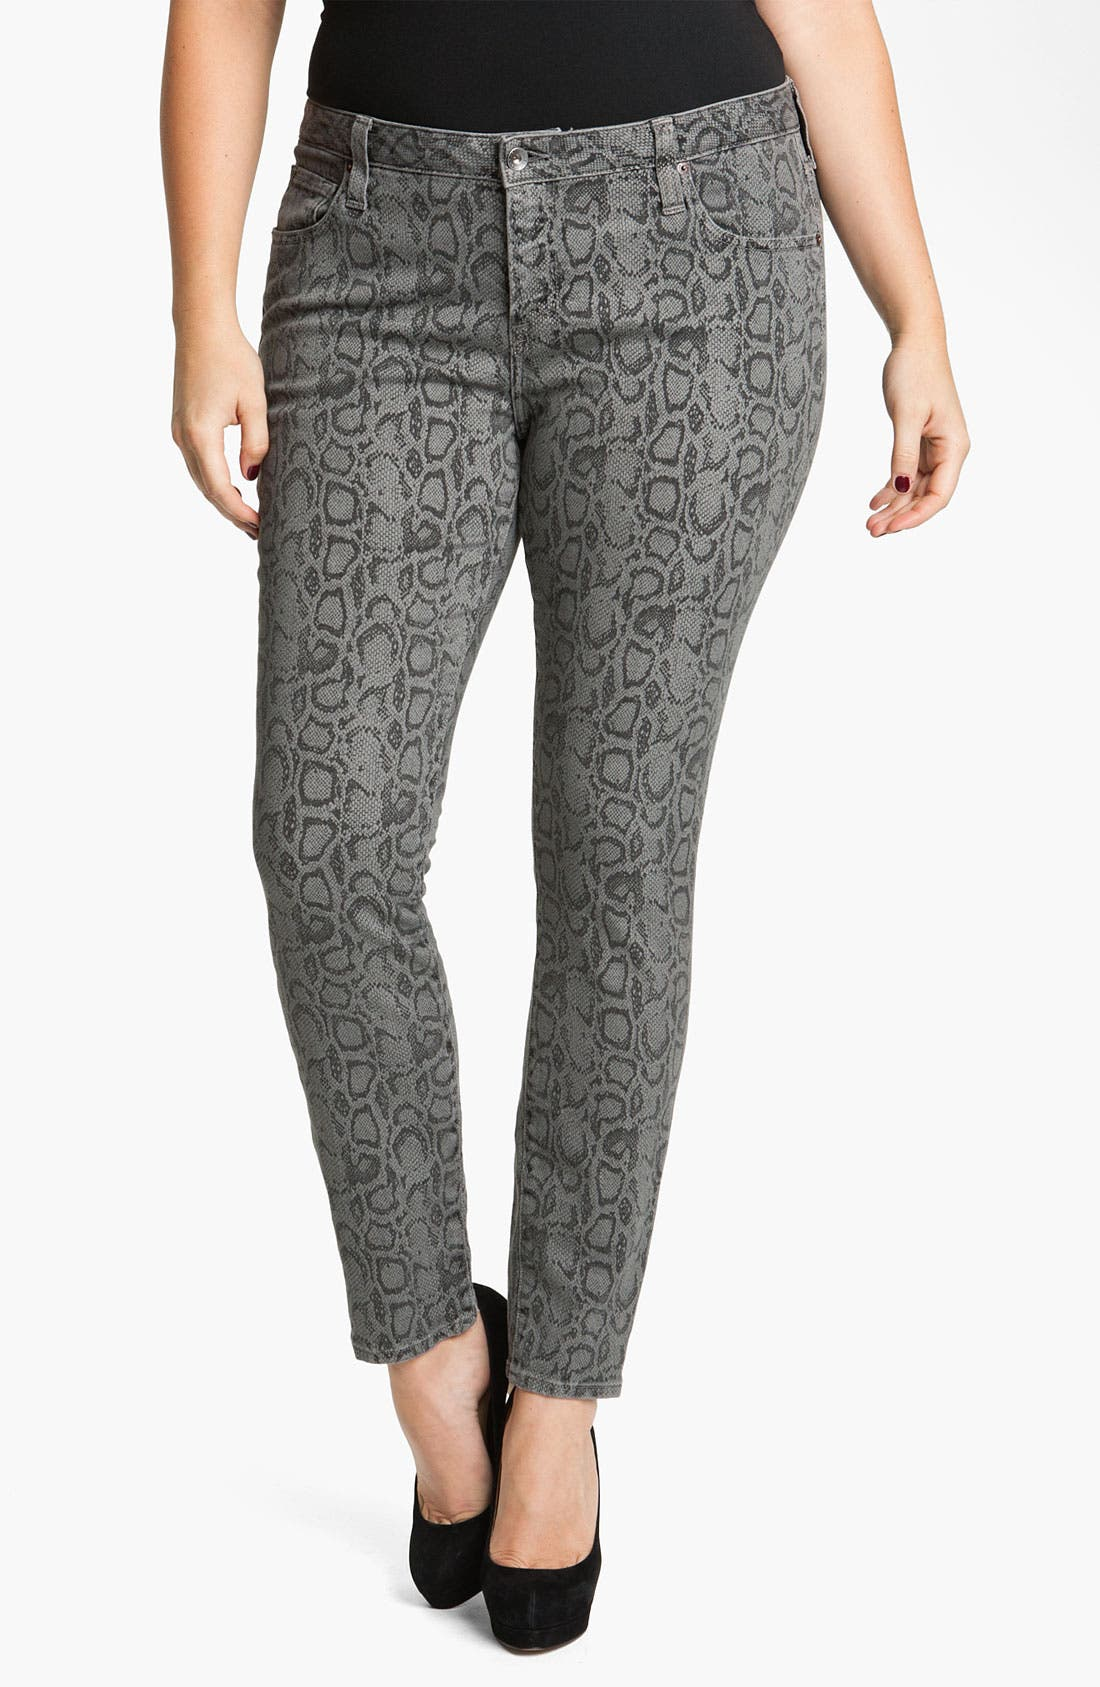 Alternate Image 1 Selected - Lucky Brand 'Ginger' Snake Print Skinny Jeans (Plus)